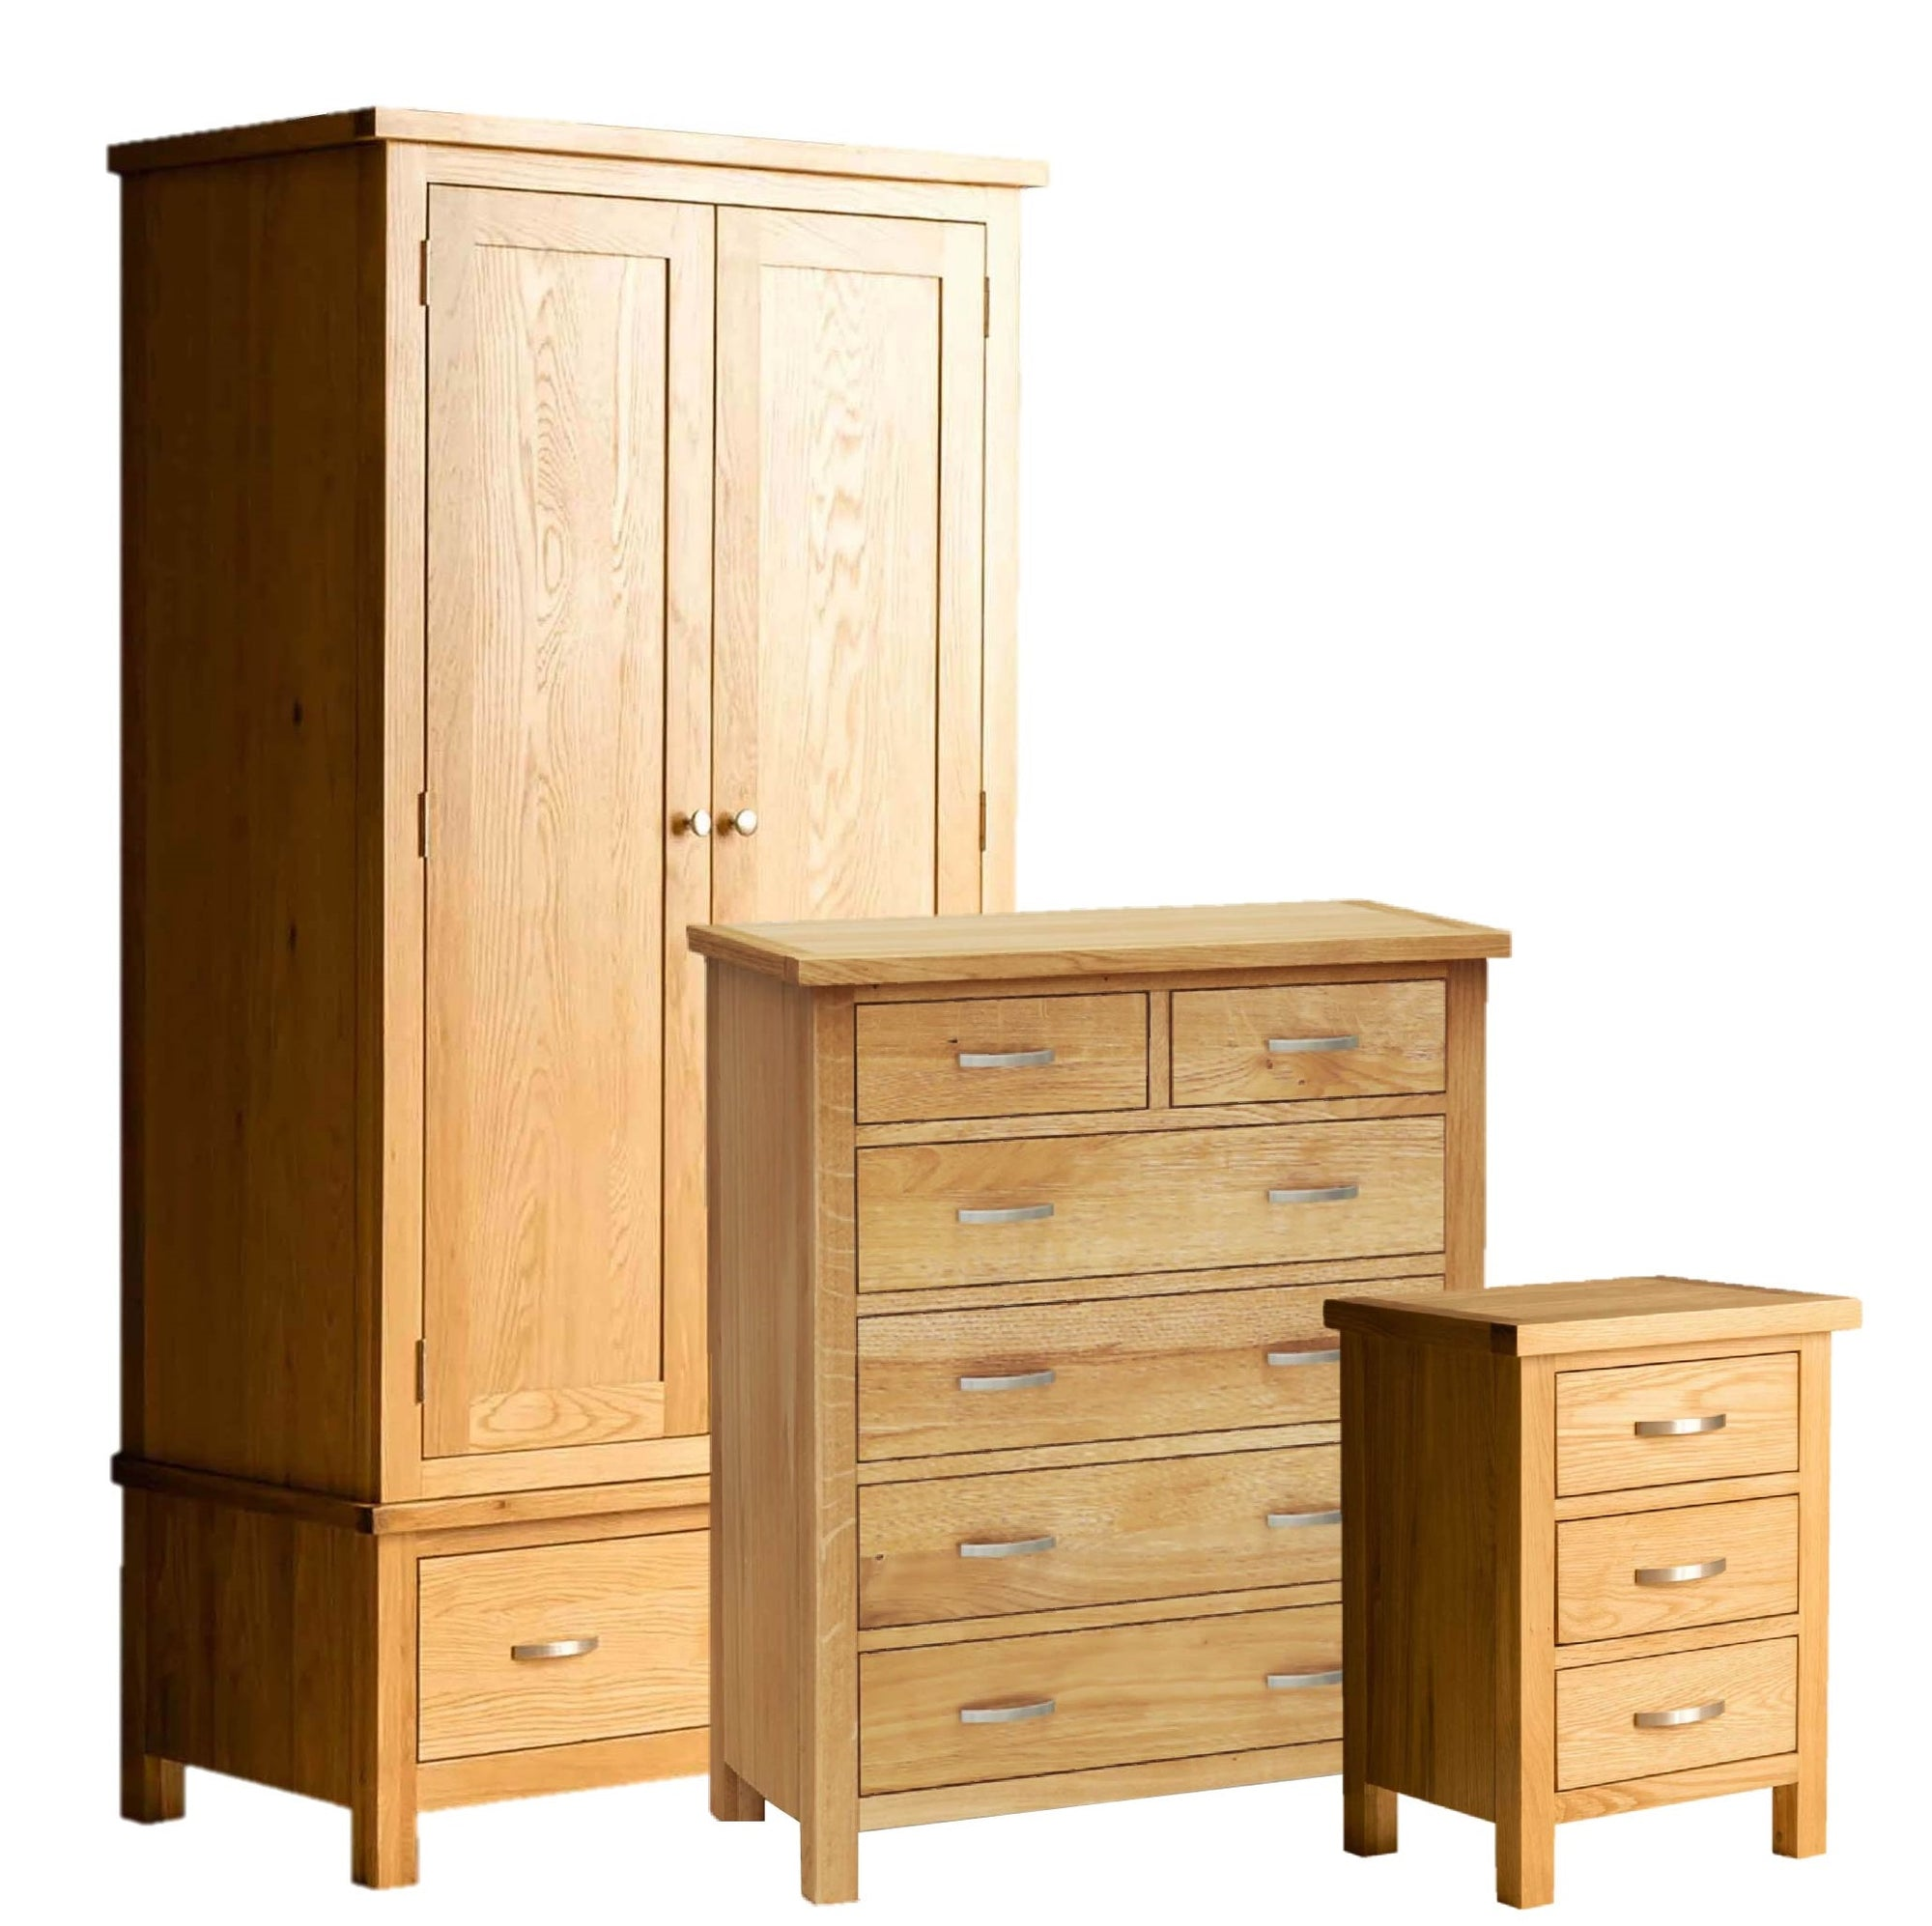 London Oak Bedroom Set = 2 over 4 drawer chest, bedside and double wardrobe by Roseland Furniture